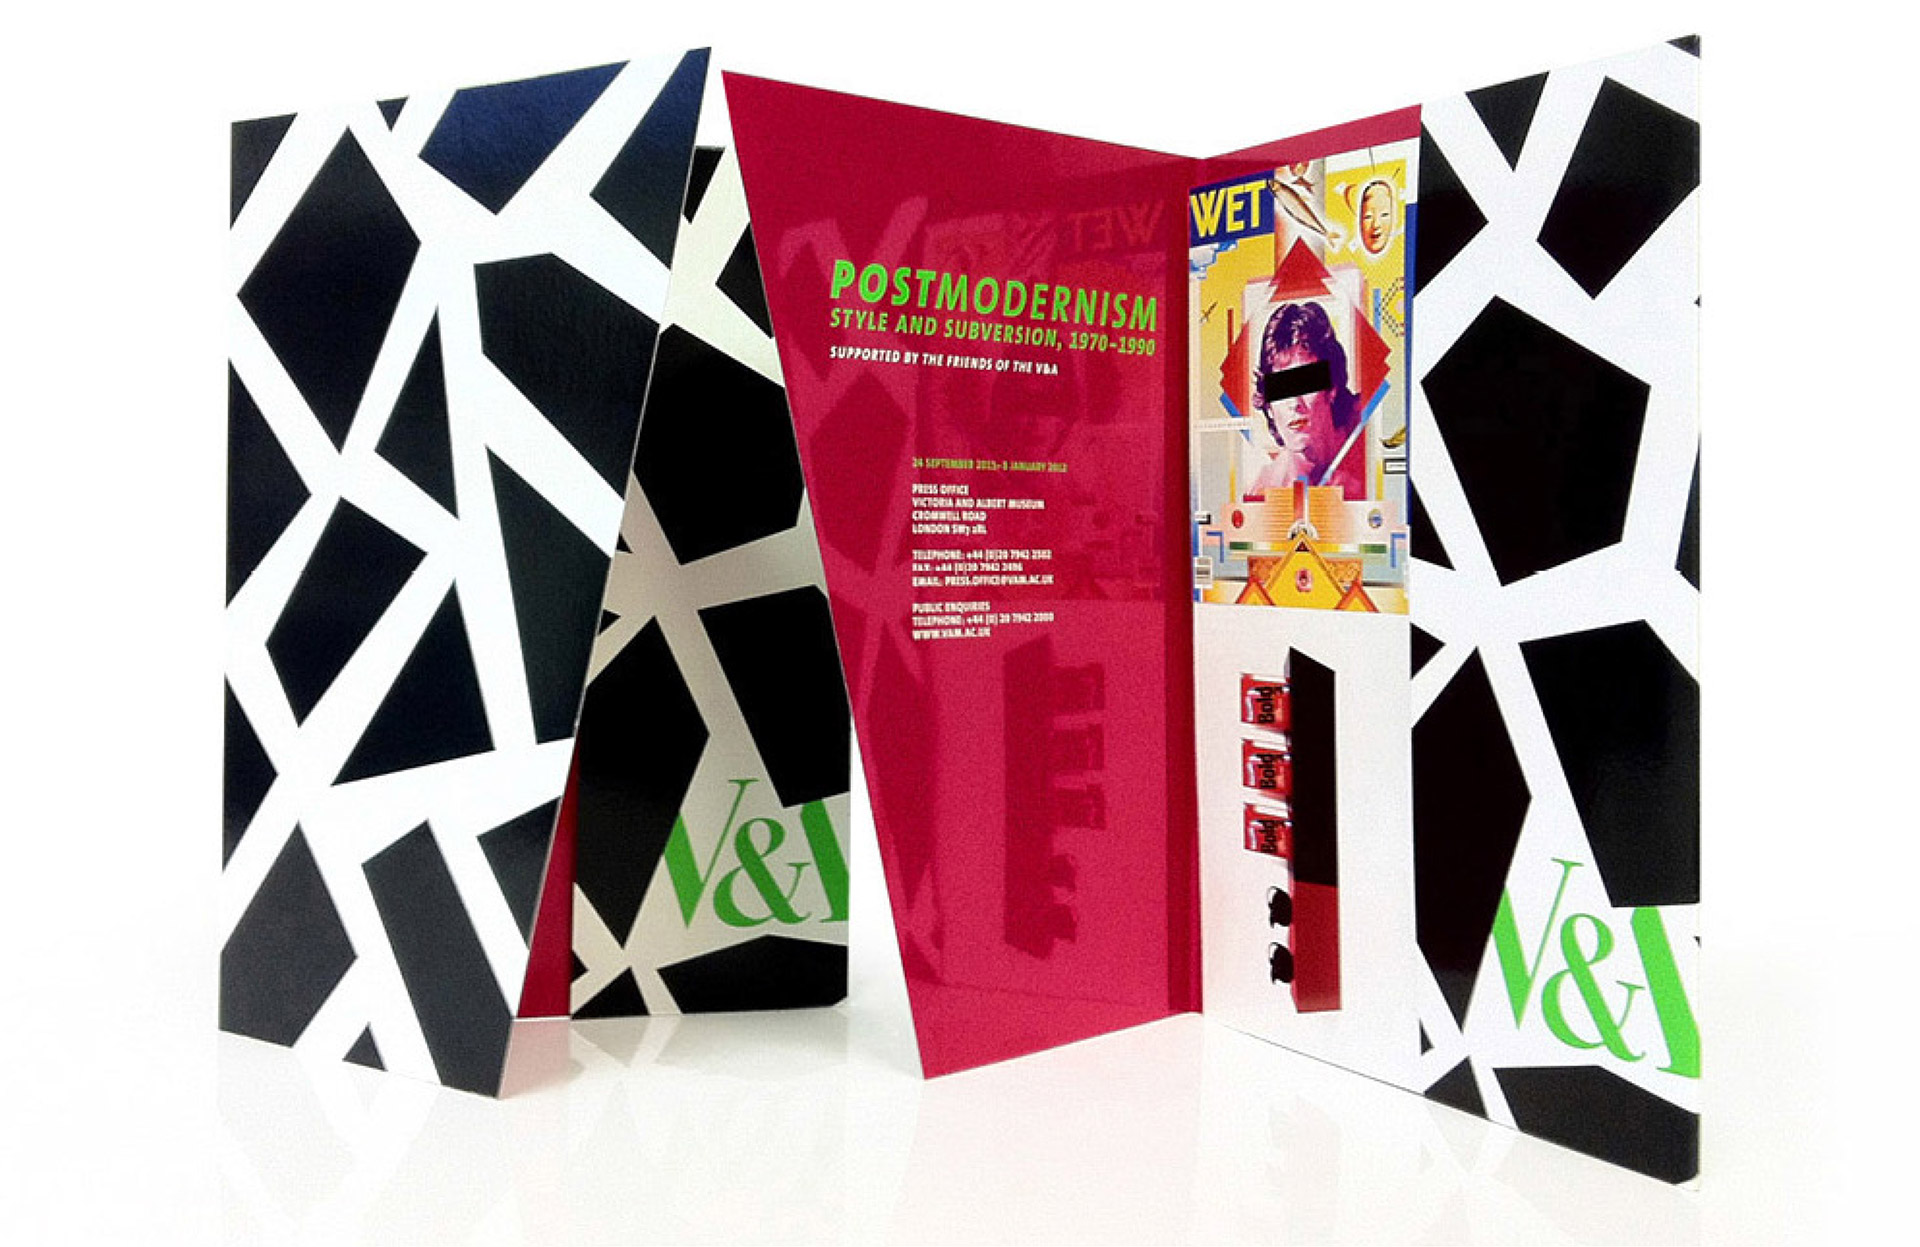 Postmodernism press campaign for V&A South Kensington designed by Irish Butcher